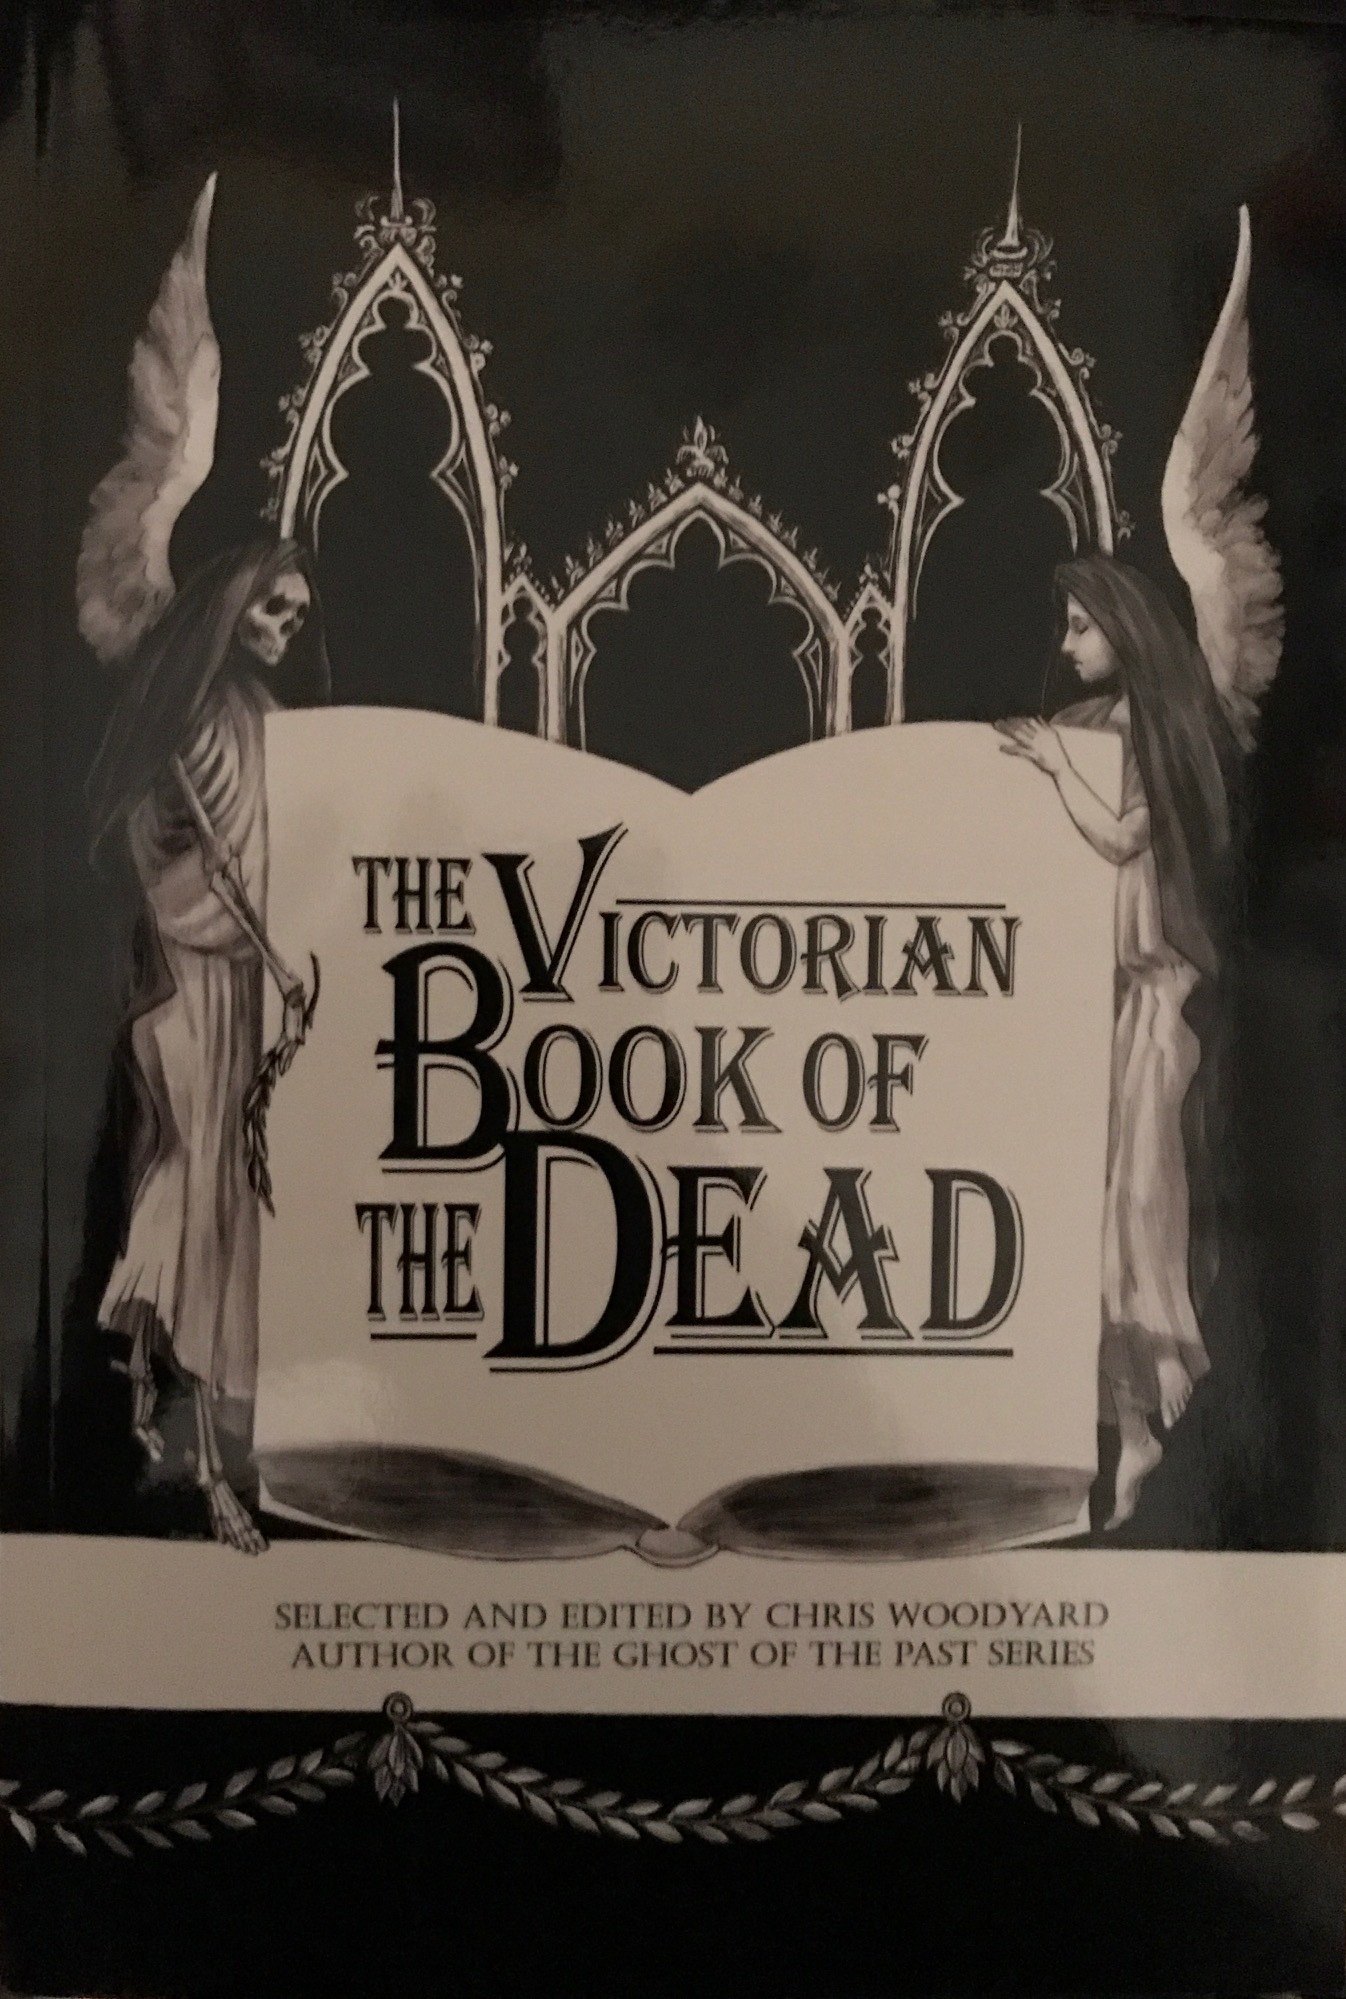 The body snatching article comes from The Victorian Book of the Dead, by Chris Woodyard